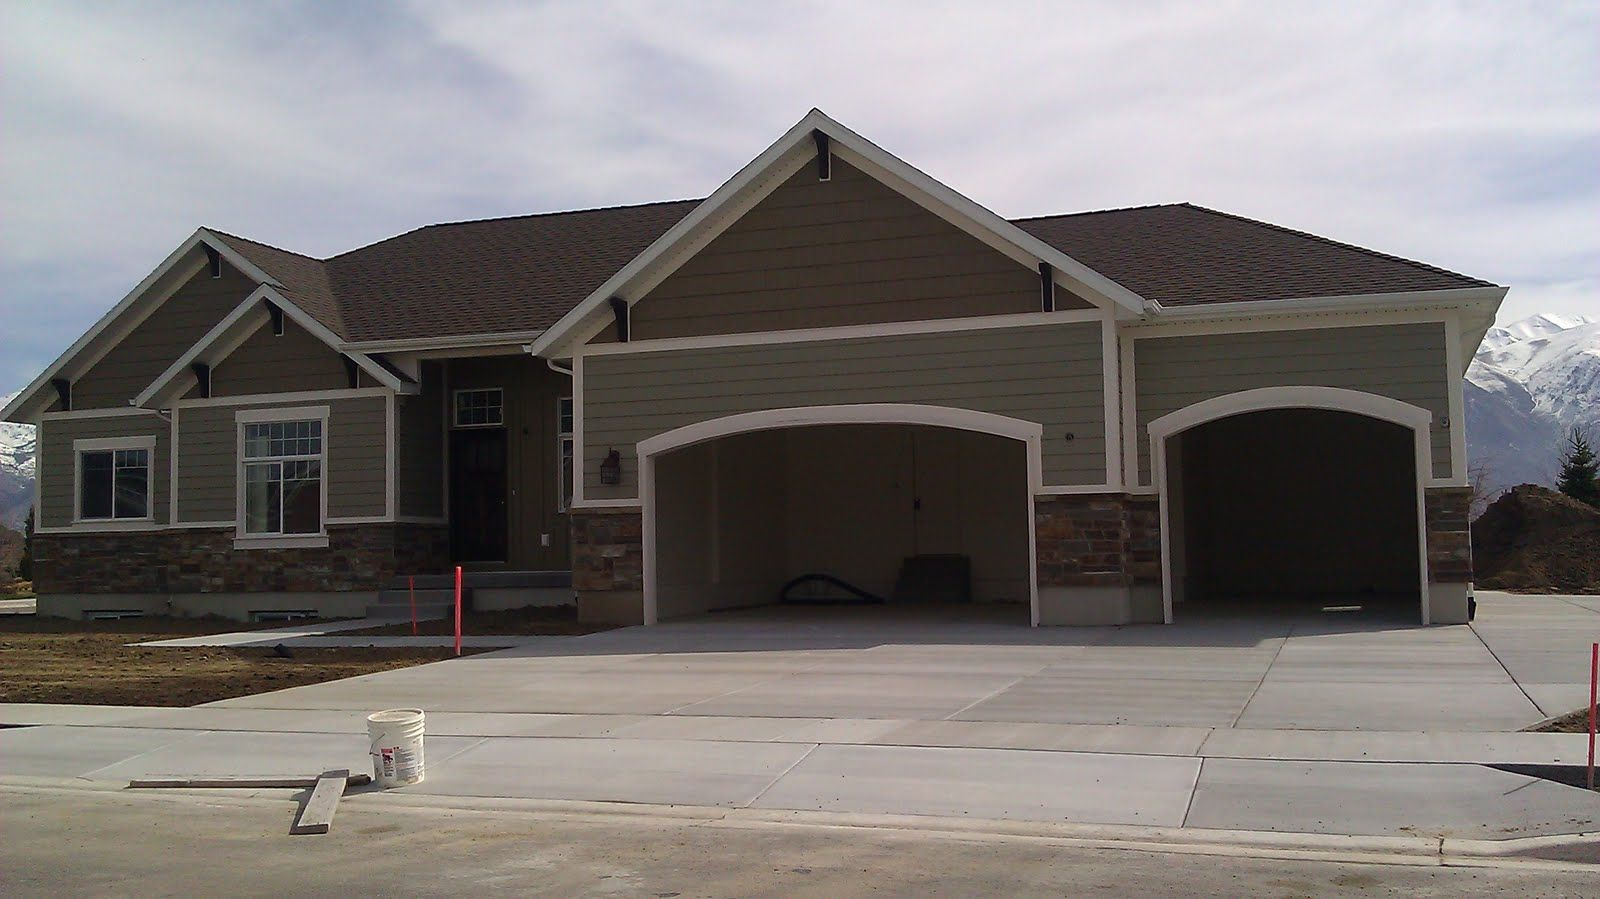 Garage exterior paint ideas - Find This Pin And More On House Exterior Styles Exterior Paint Color Combinations With Dark Garage Doors